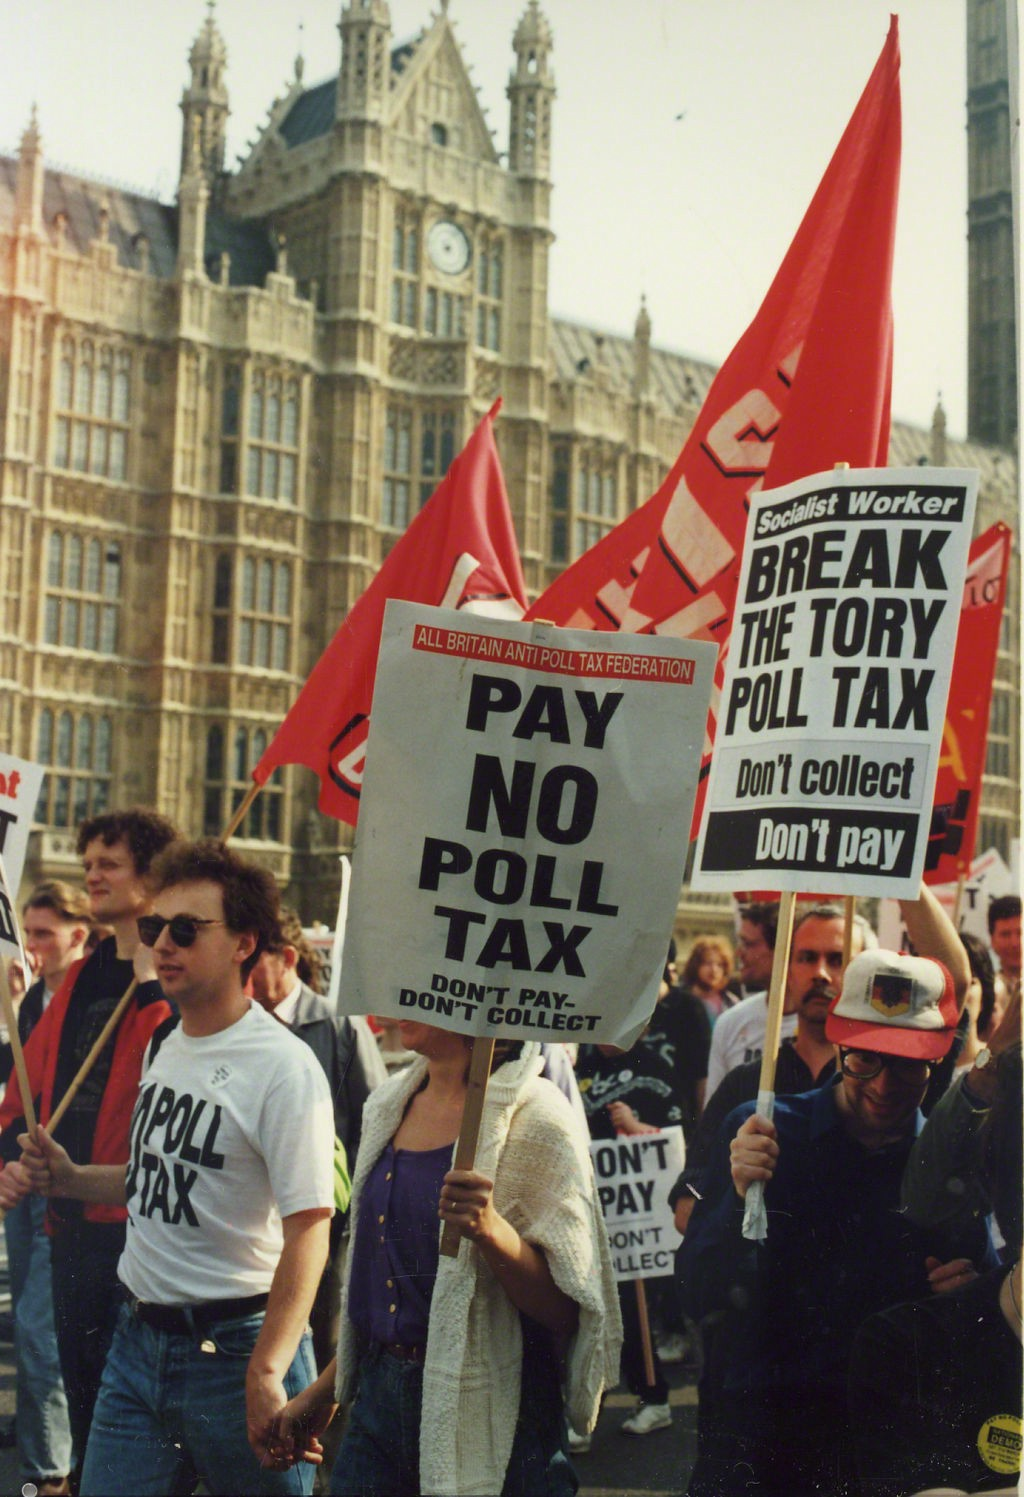 A group of protestors walk past one of the old buildings of London, holding placards and banners against the Poll Tax.